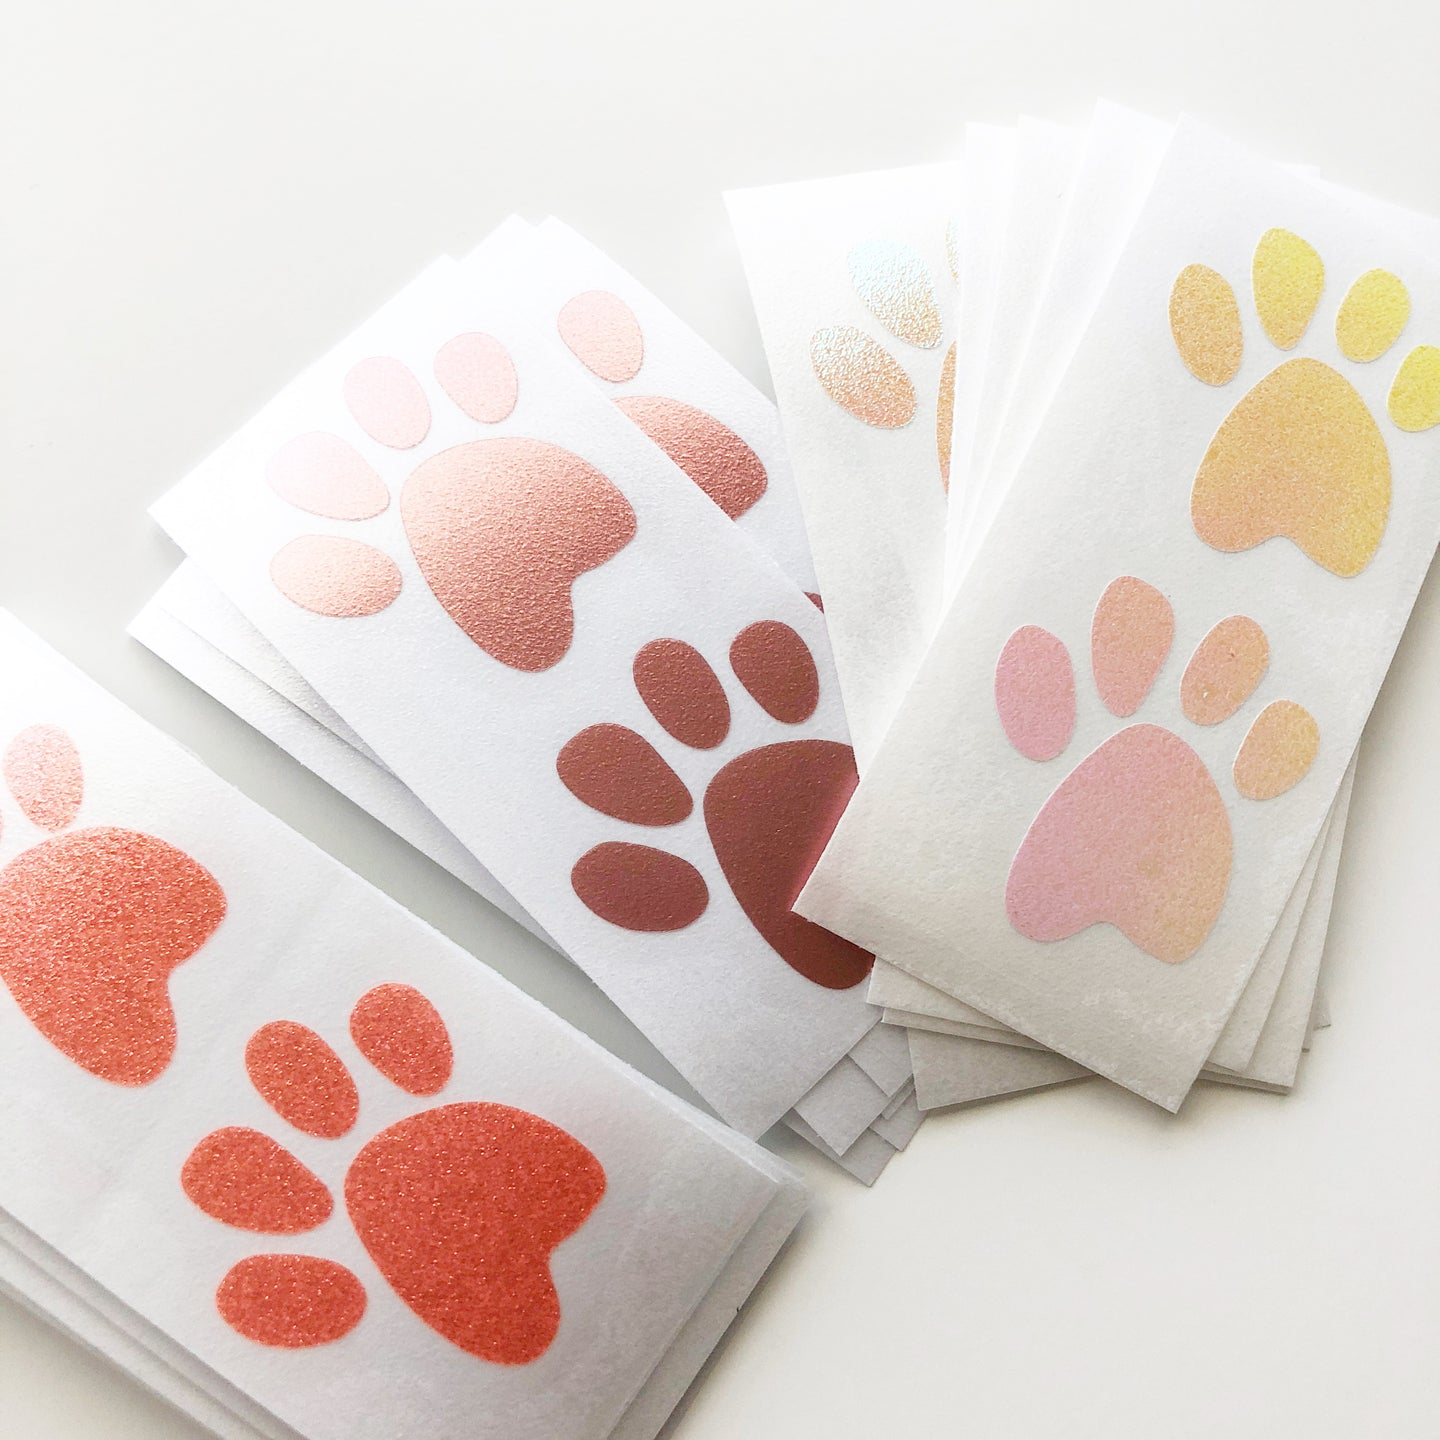 Small Paw Print Vinyl Decal (Set of 2)